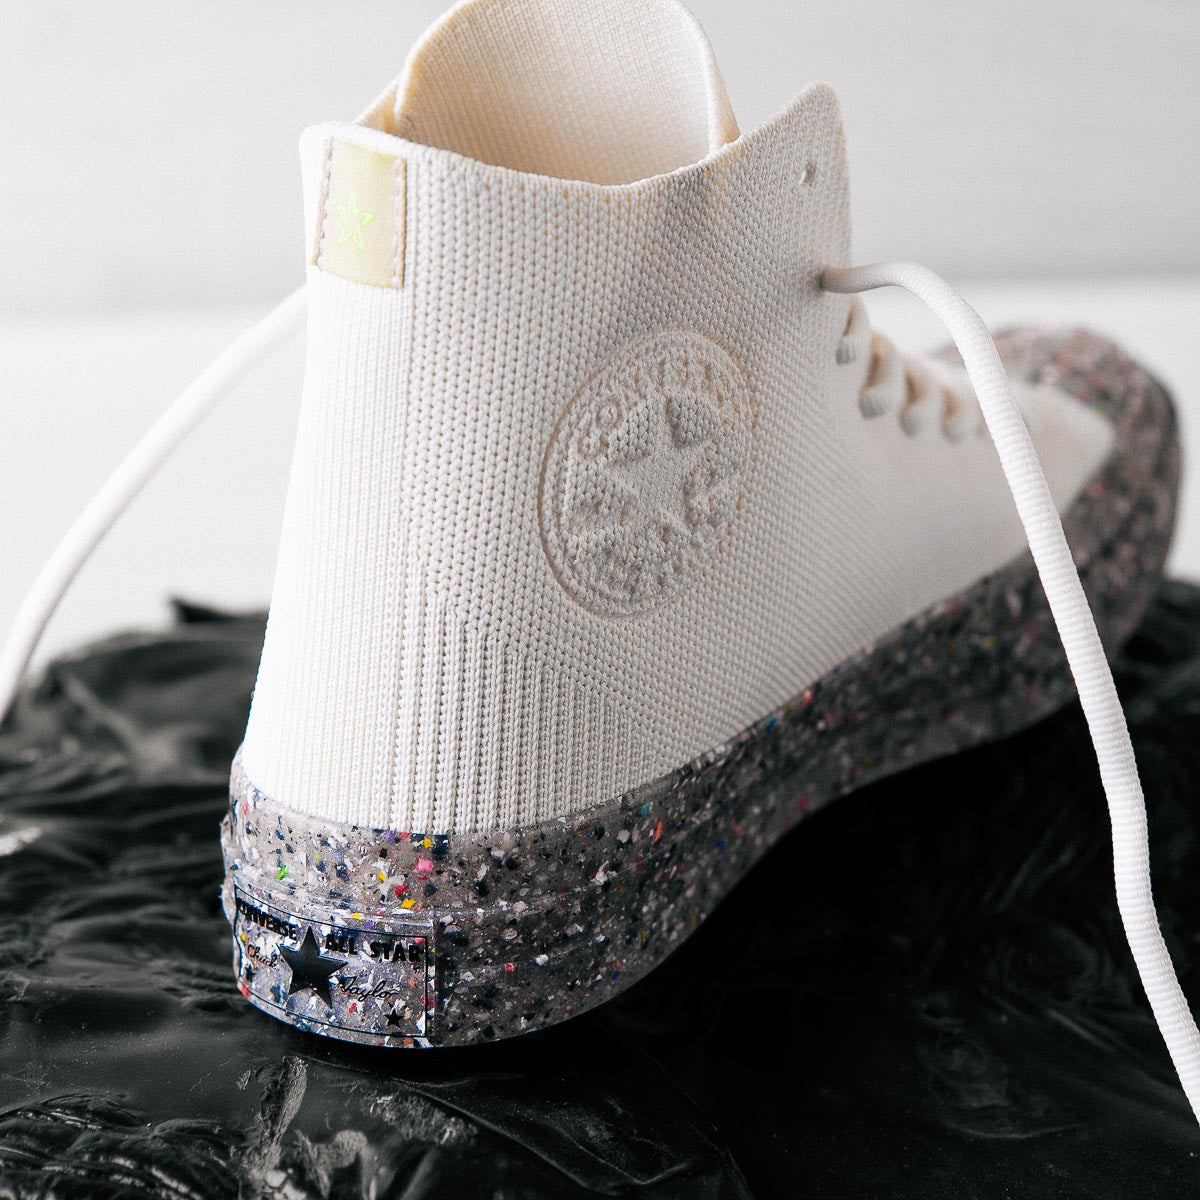 Converse Renew Recycled Knit: Sustainable Footwear | Flatspot